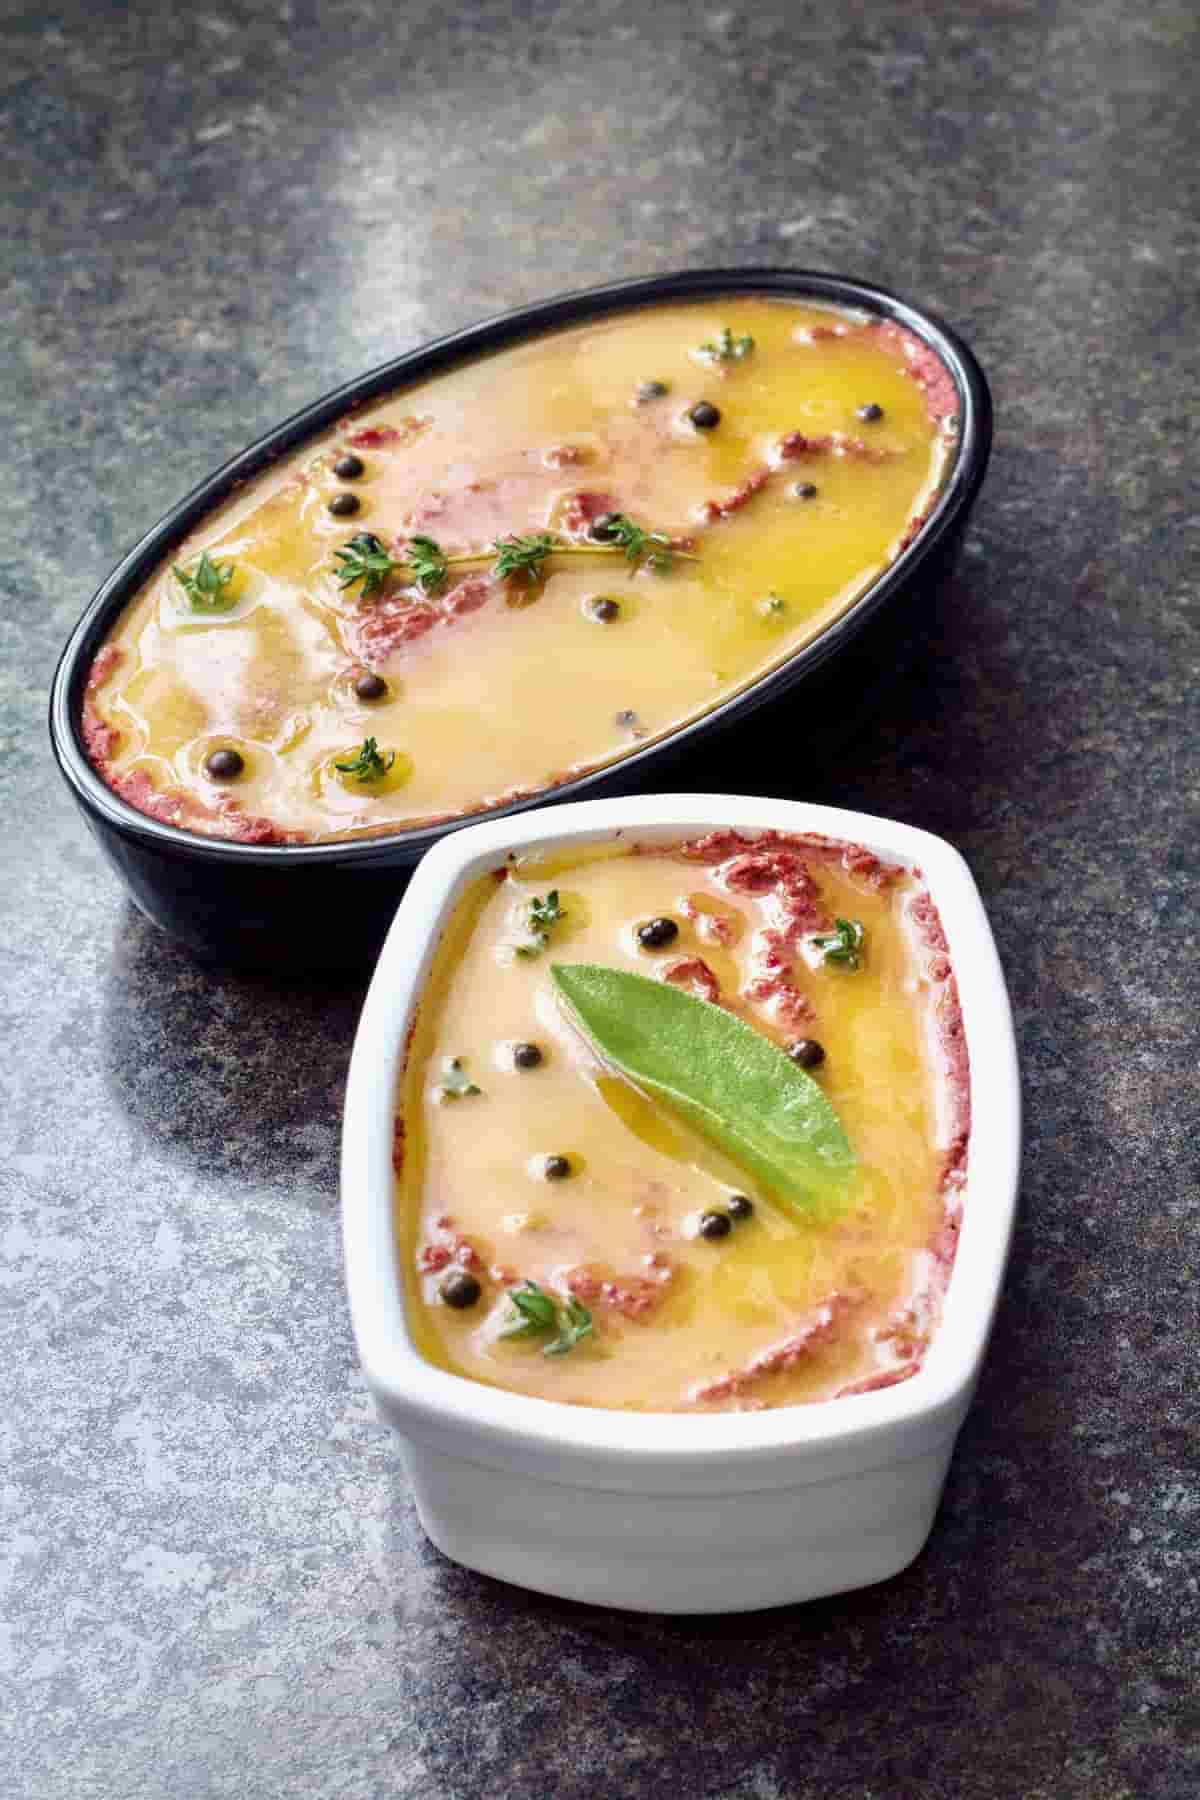 Mushroom and walnut pâté in two dishes, garnished with herbs and melted butter.